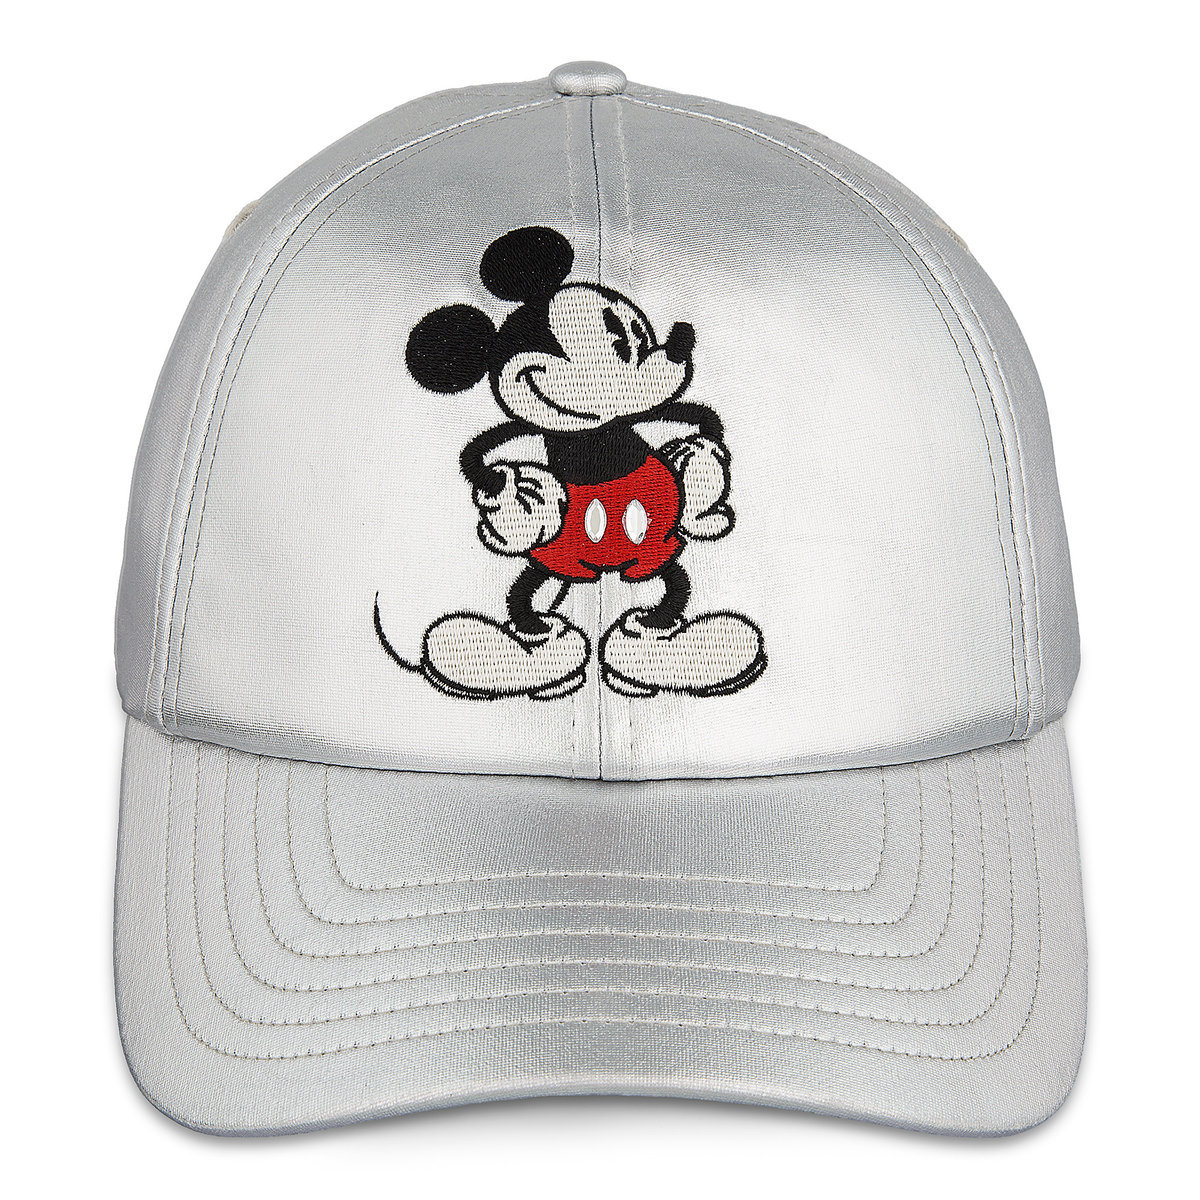 16999cbe105f0 Disney Baseball Cap - Mickey Mouse Timeless Silver Hat for Women